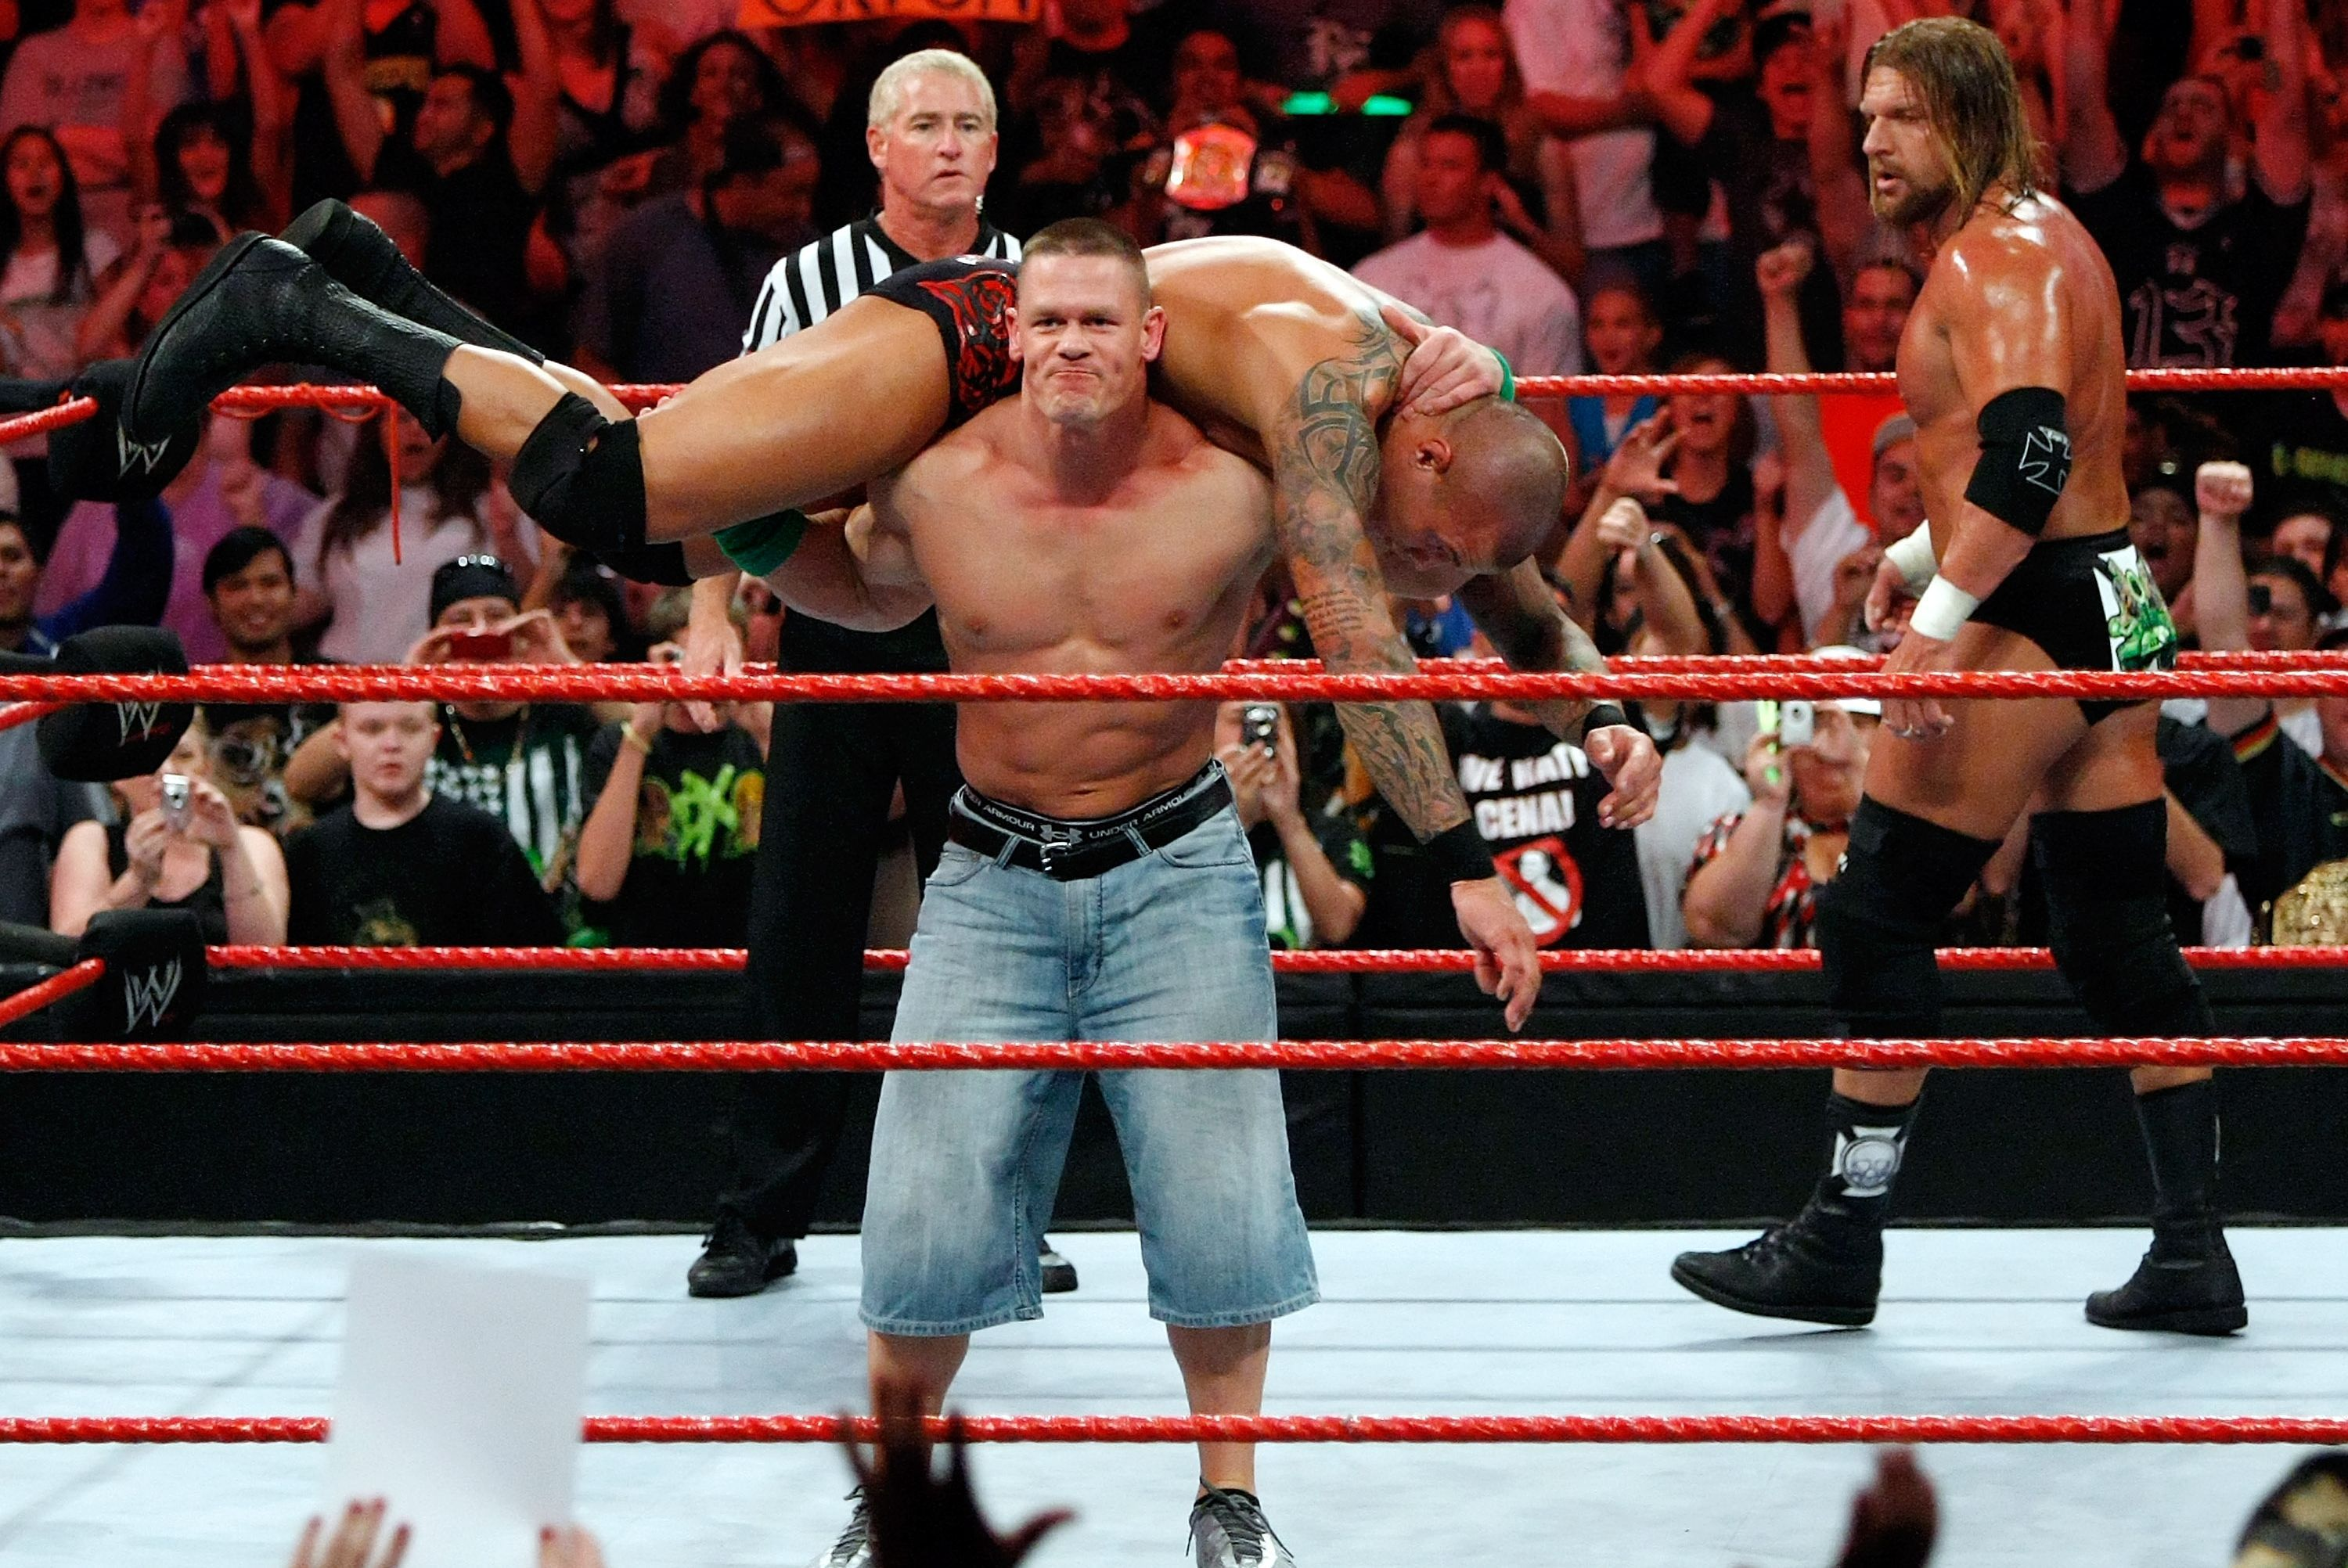 amazing john cena fight mobile hd free desktop background wallpaper